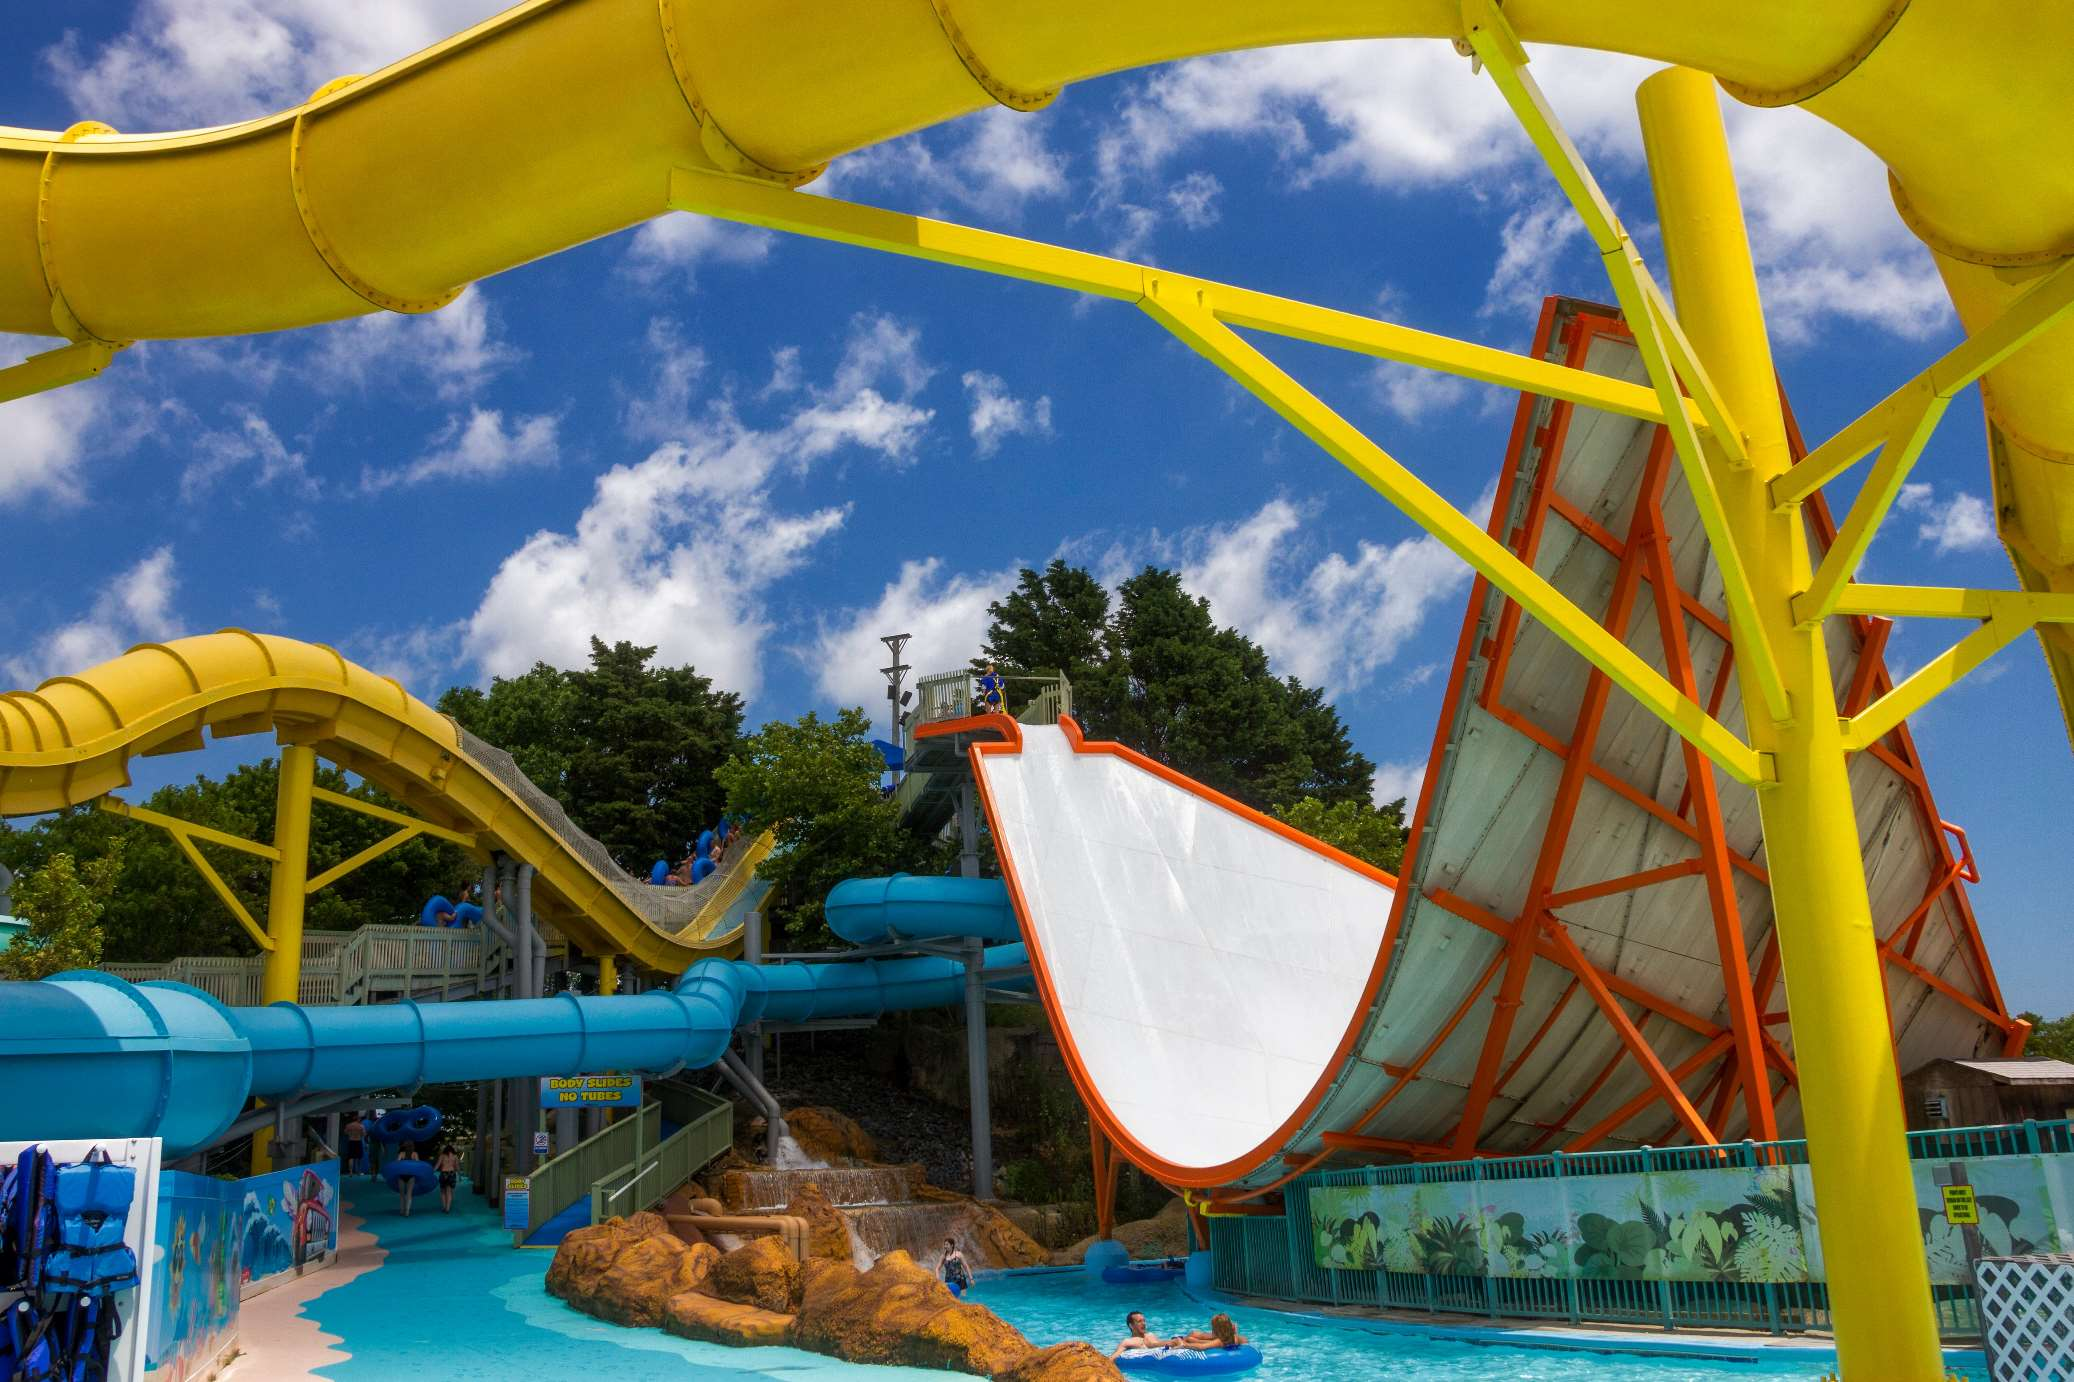 Top 10 Reasons to Visit Jolly Roger Parks in Ocean City, MD